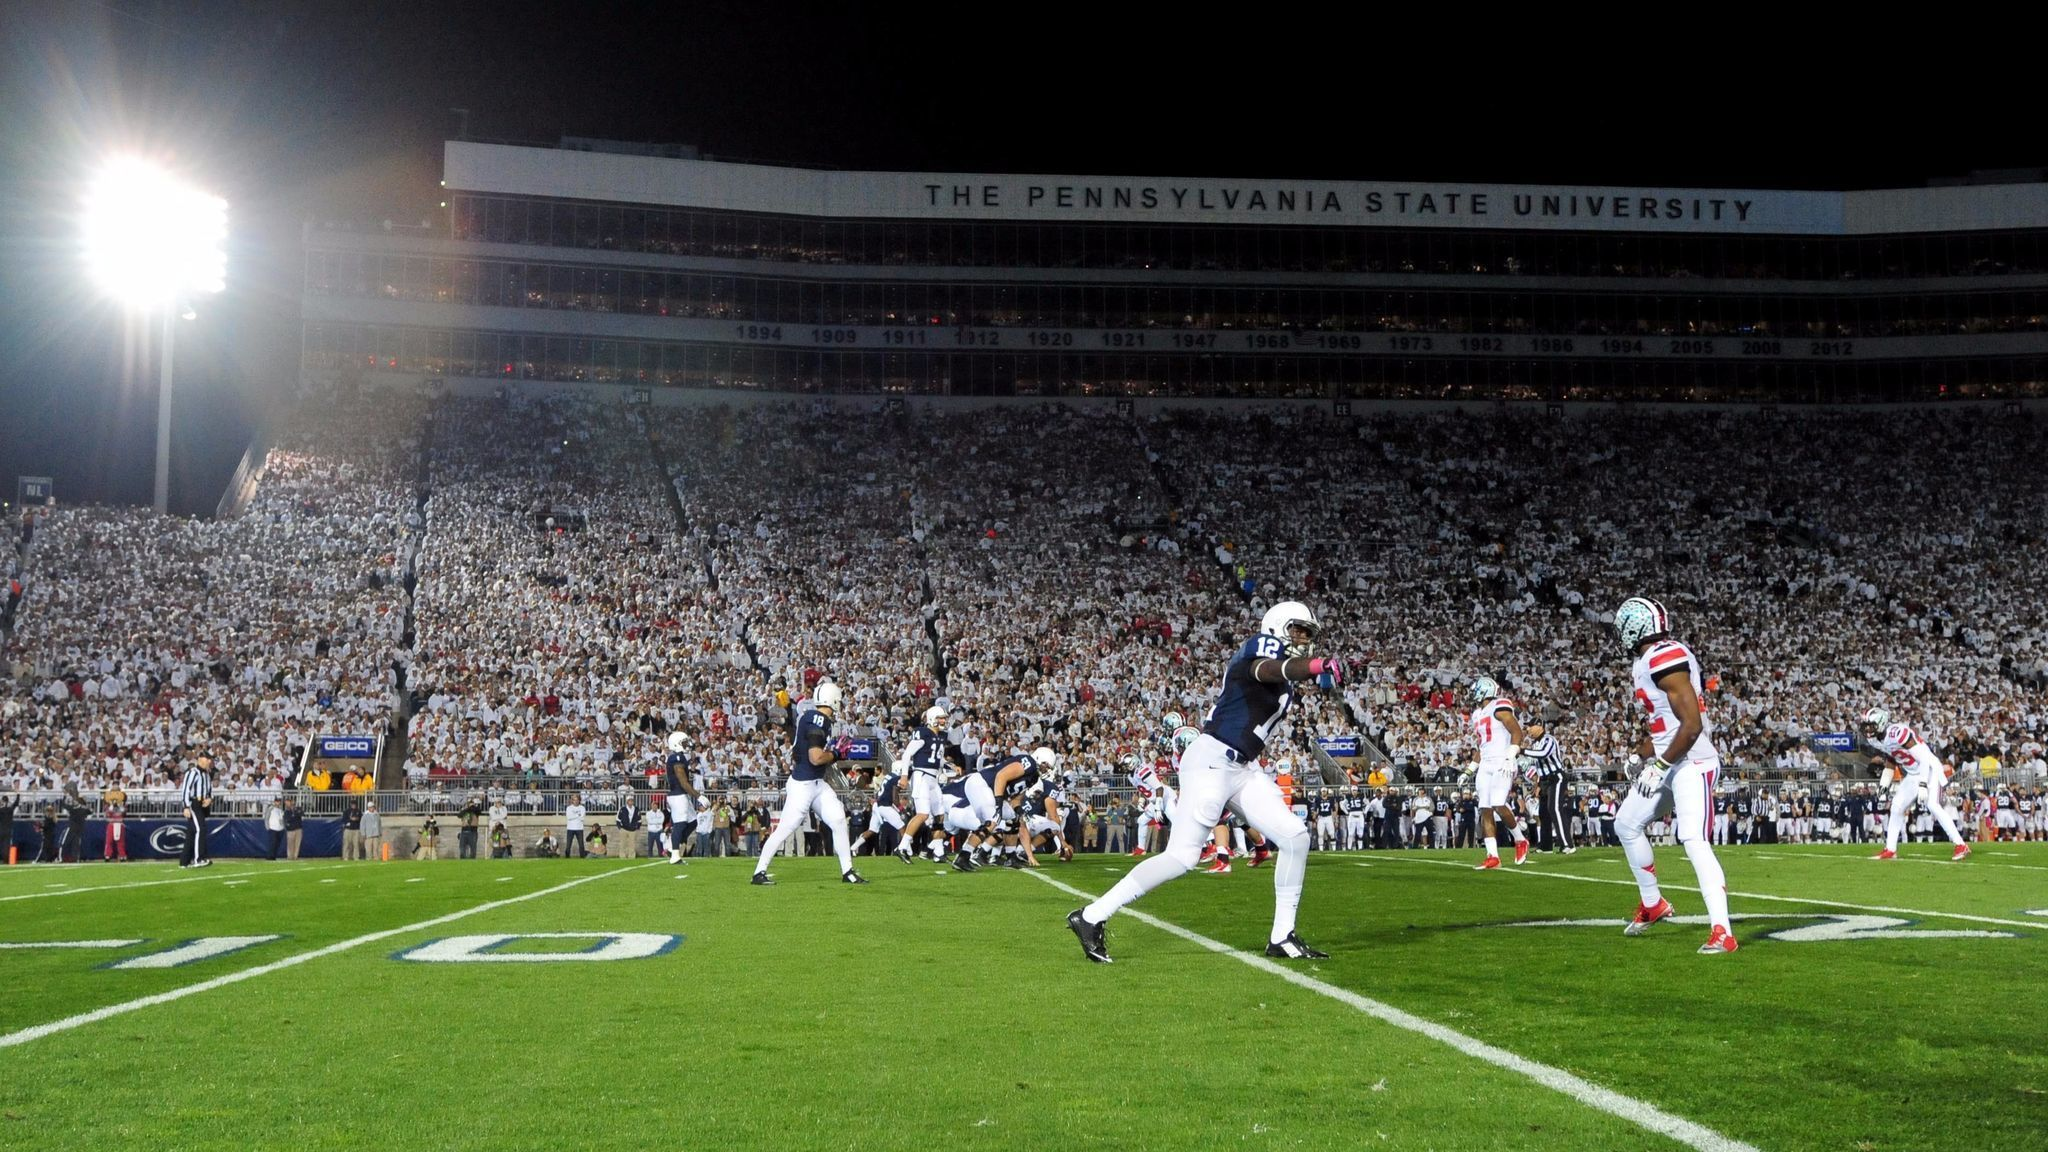 Mc-spt-penn-state-football-georgia-state-gameday-20170913